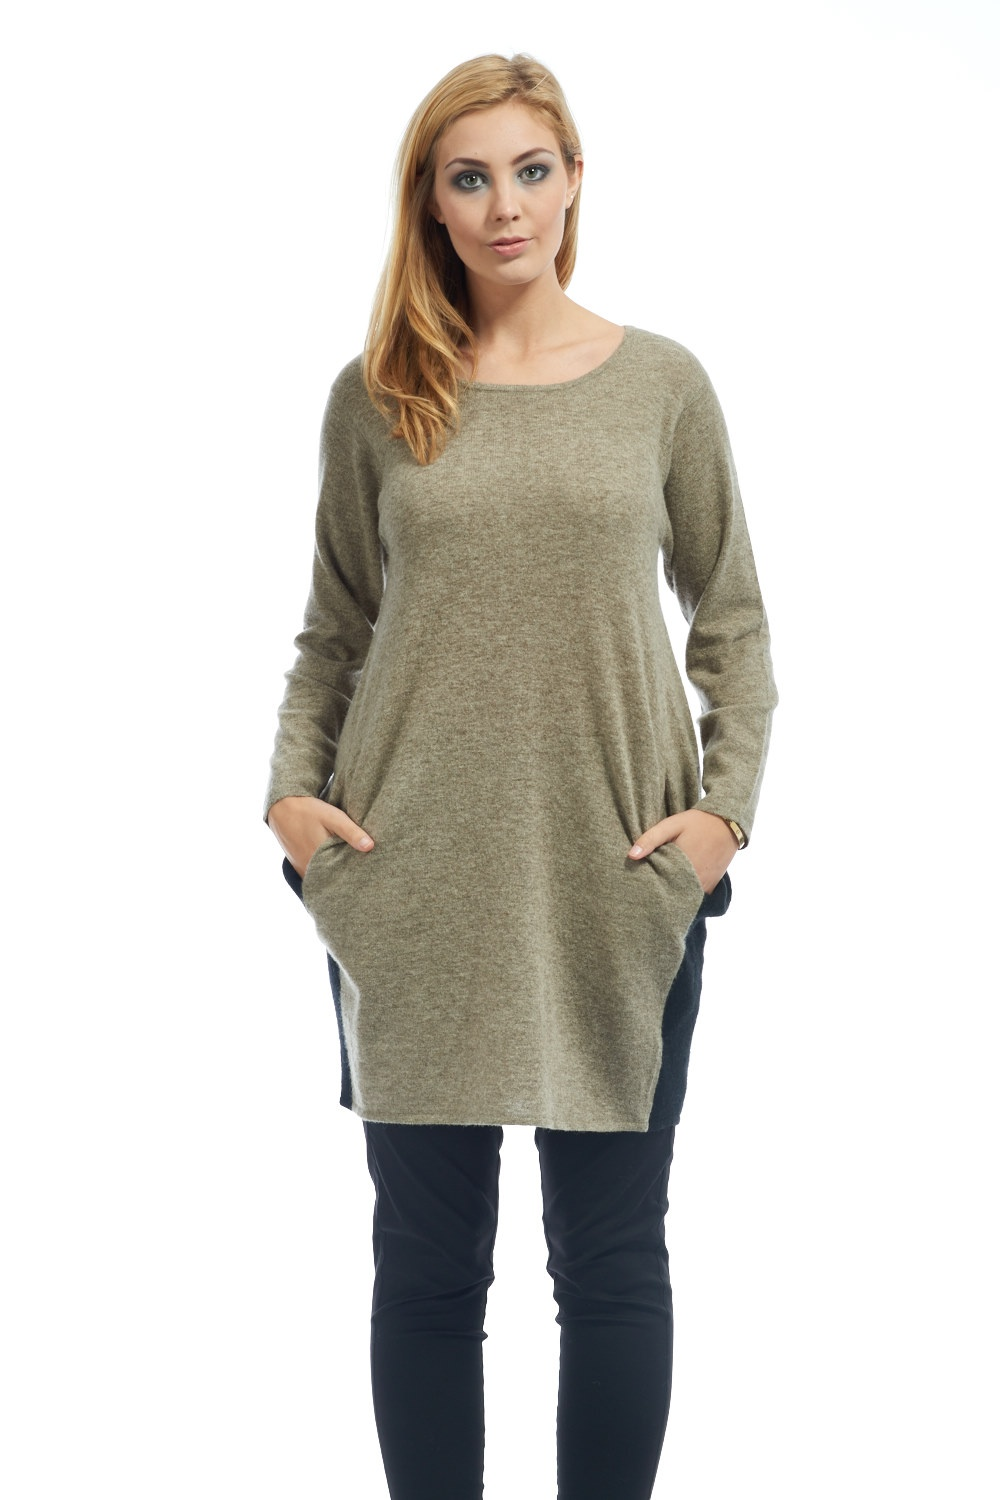 Find great deals on eBay for Womens Tunic Jumpers in Women's Clothing and Sweaters. Shop with confidence. Find great deals on eBay for Womens Tunic Jumpers in Women's Clothing and Sweaters. Wrap Style Poncho Jumper Top. Chunky Knitted Jumper. Machine Washable. Soft, Stretchy and Comfortable Material. Fashion shows good taste. New In Fashion.